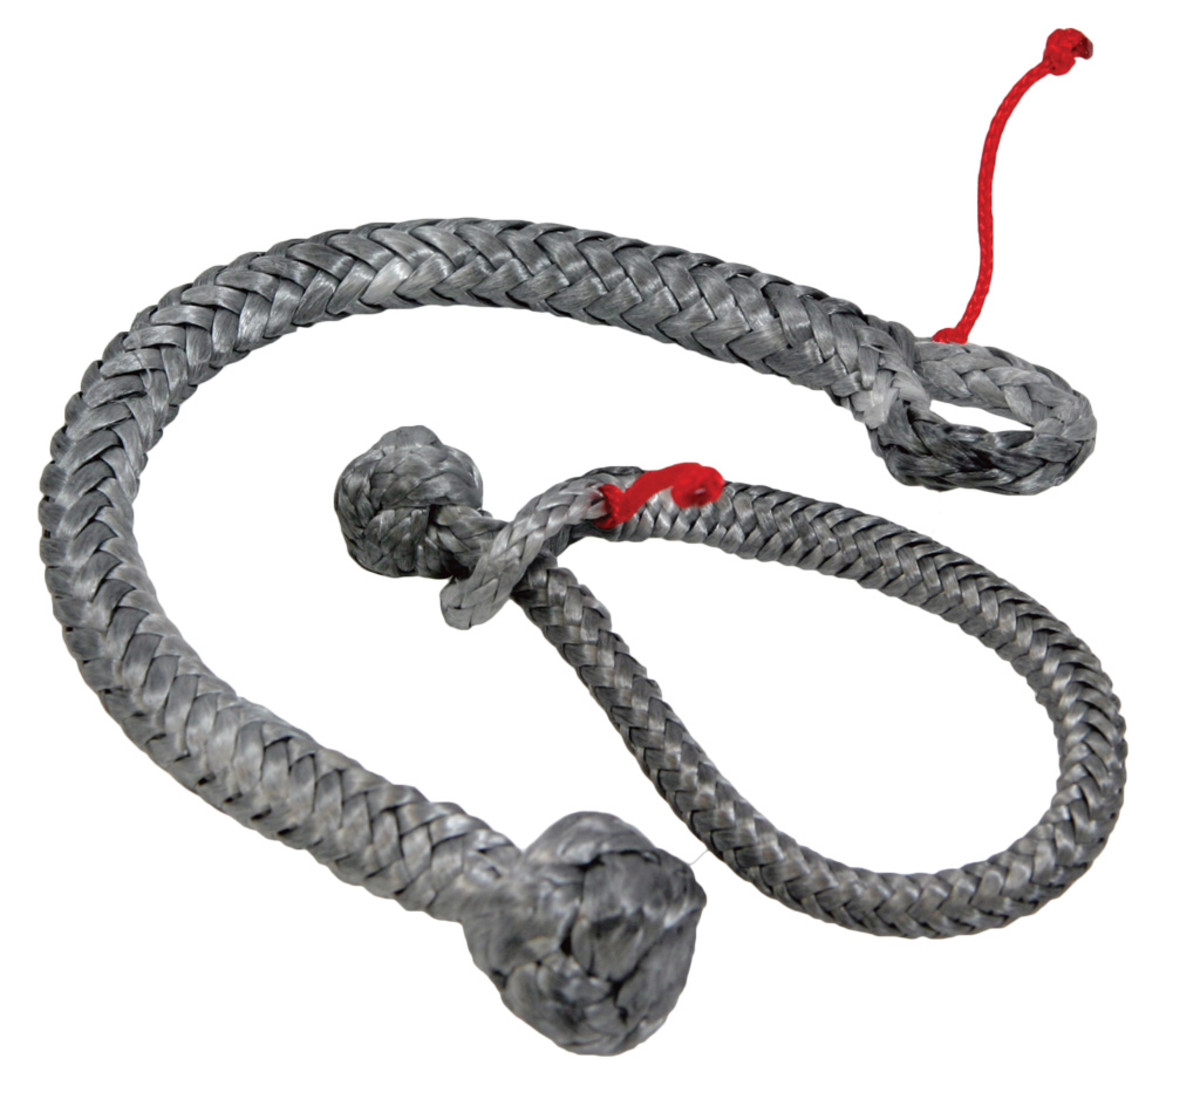 These soft shackles from FSE Robline are marketed by Ronstan International